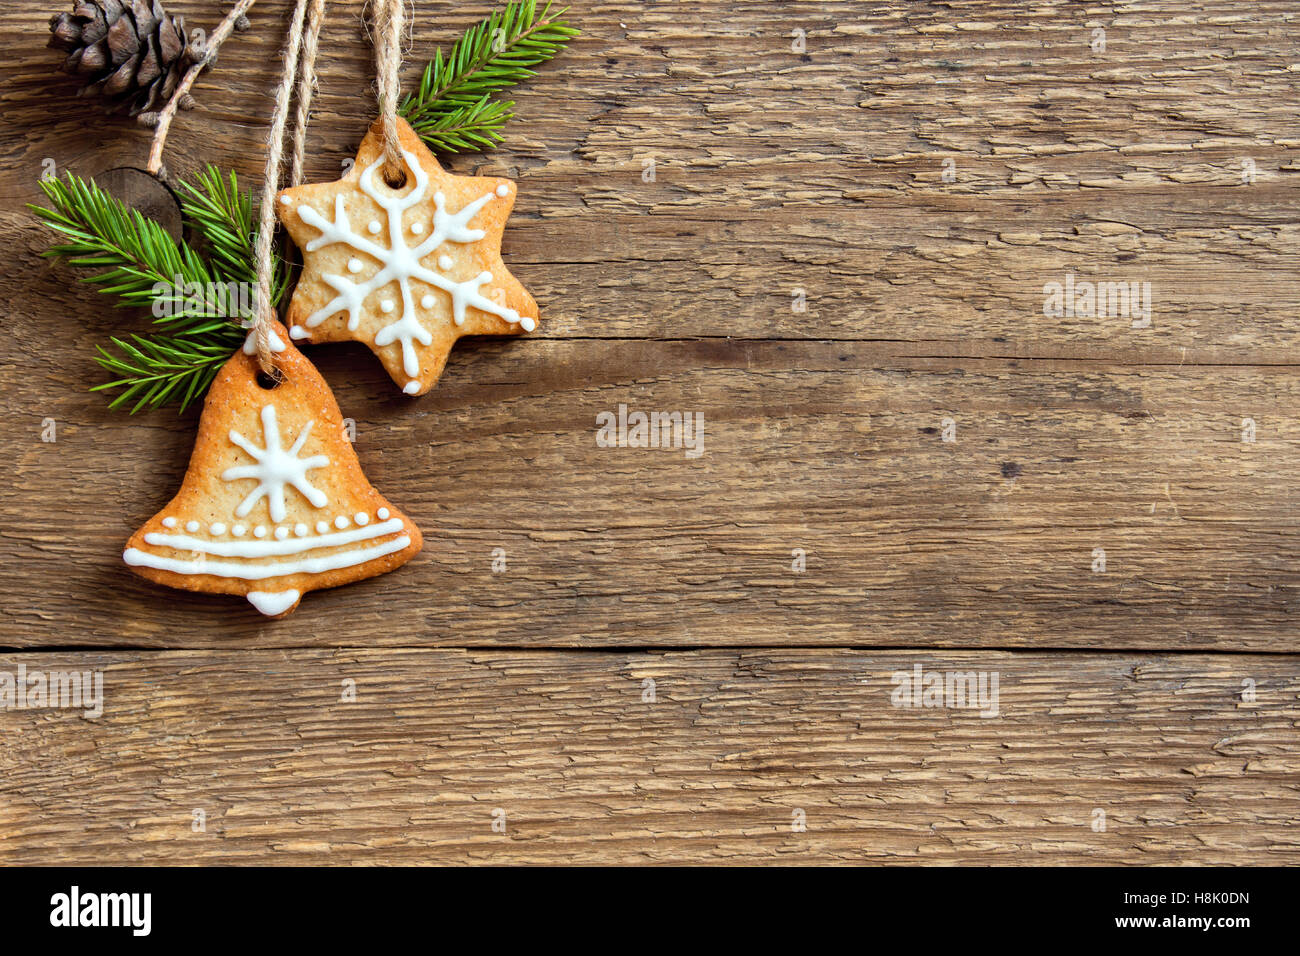 Gingerbread Christmas cookies and fir branches hanging over wooden background with copy space - festive Christmas - Stock Image